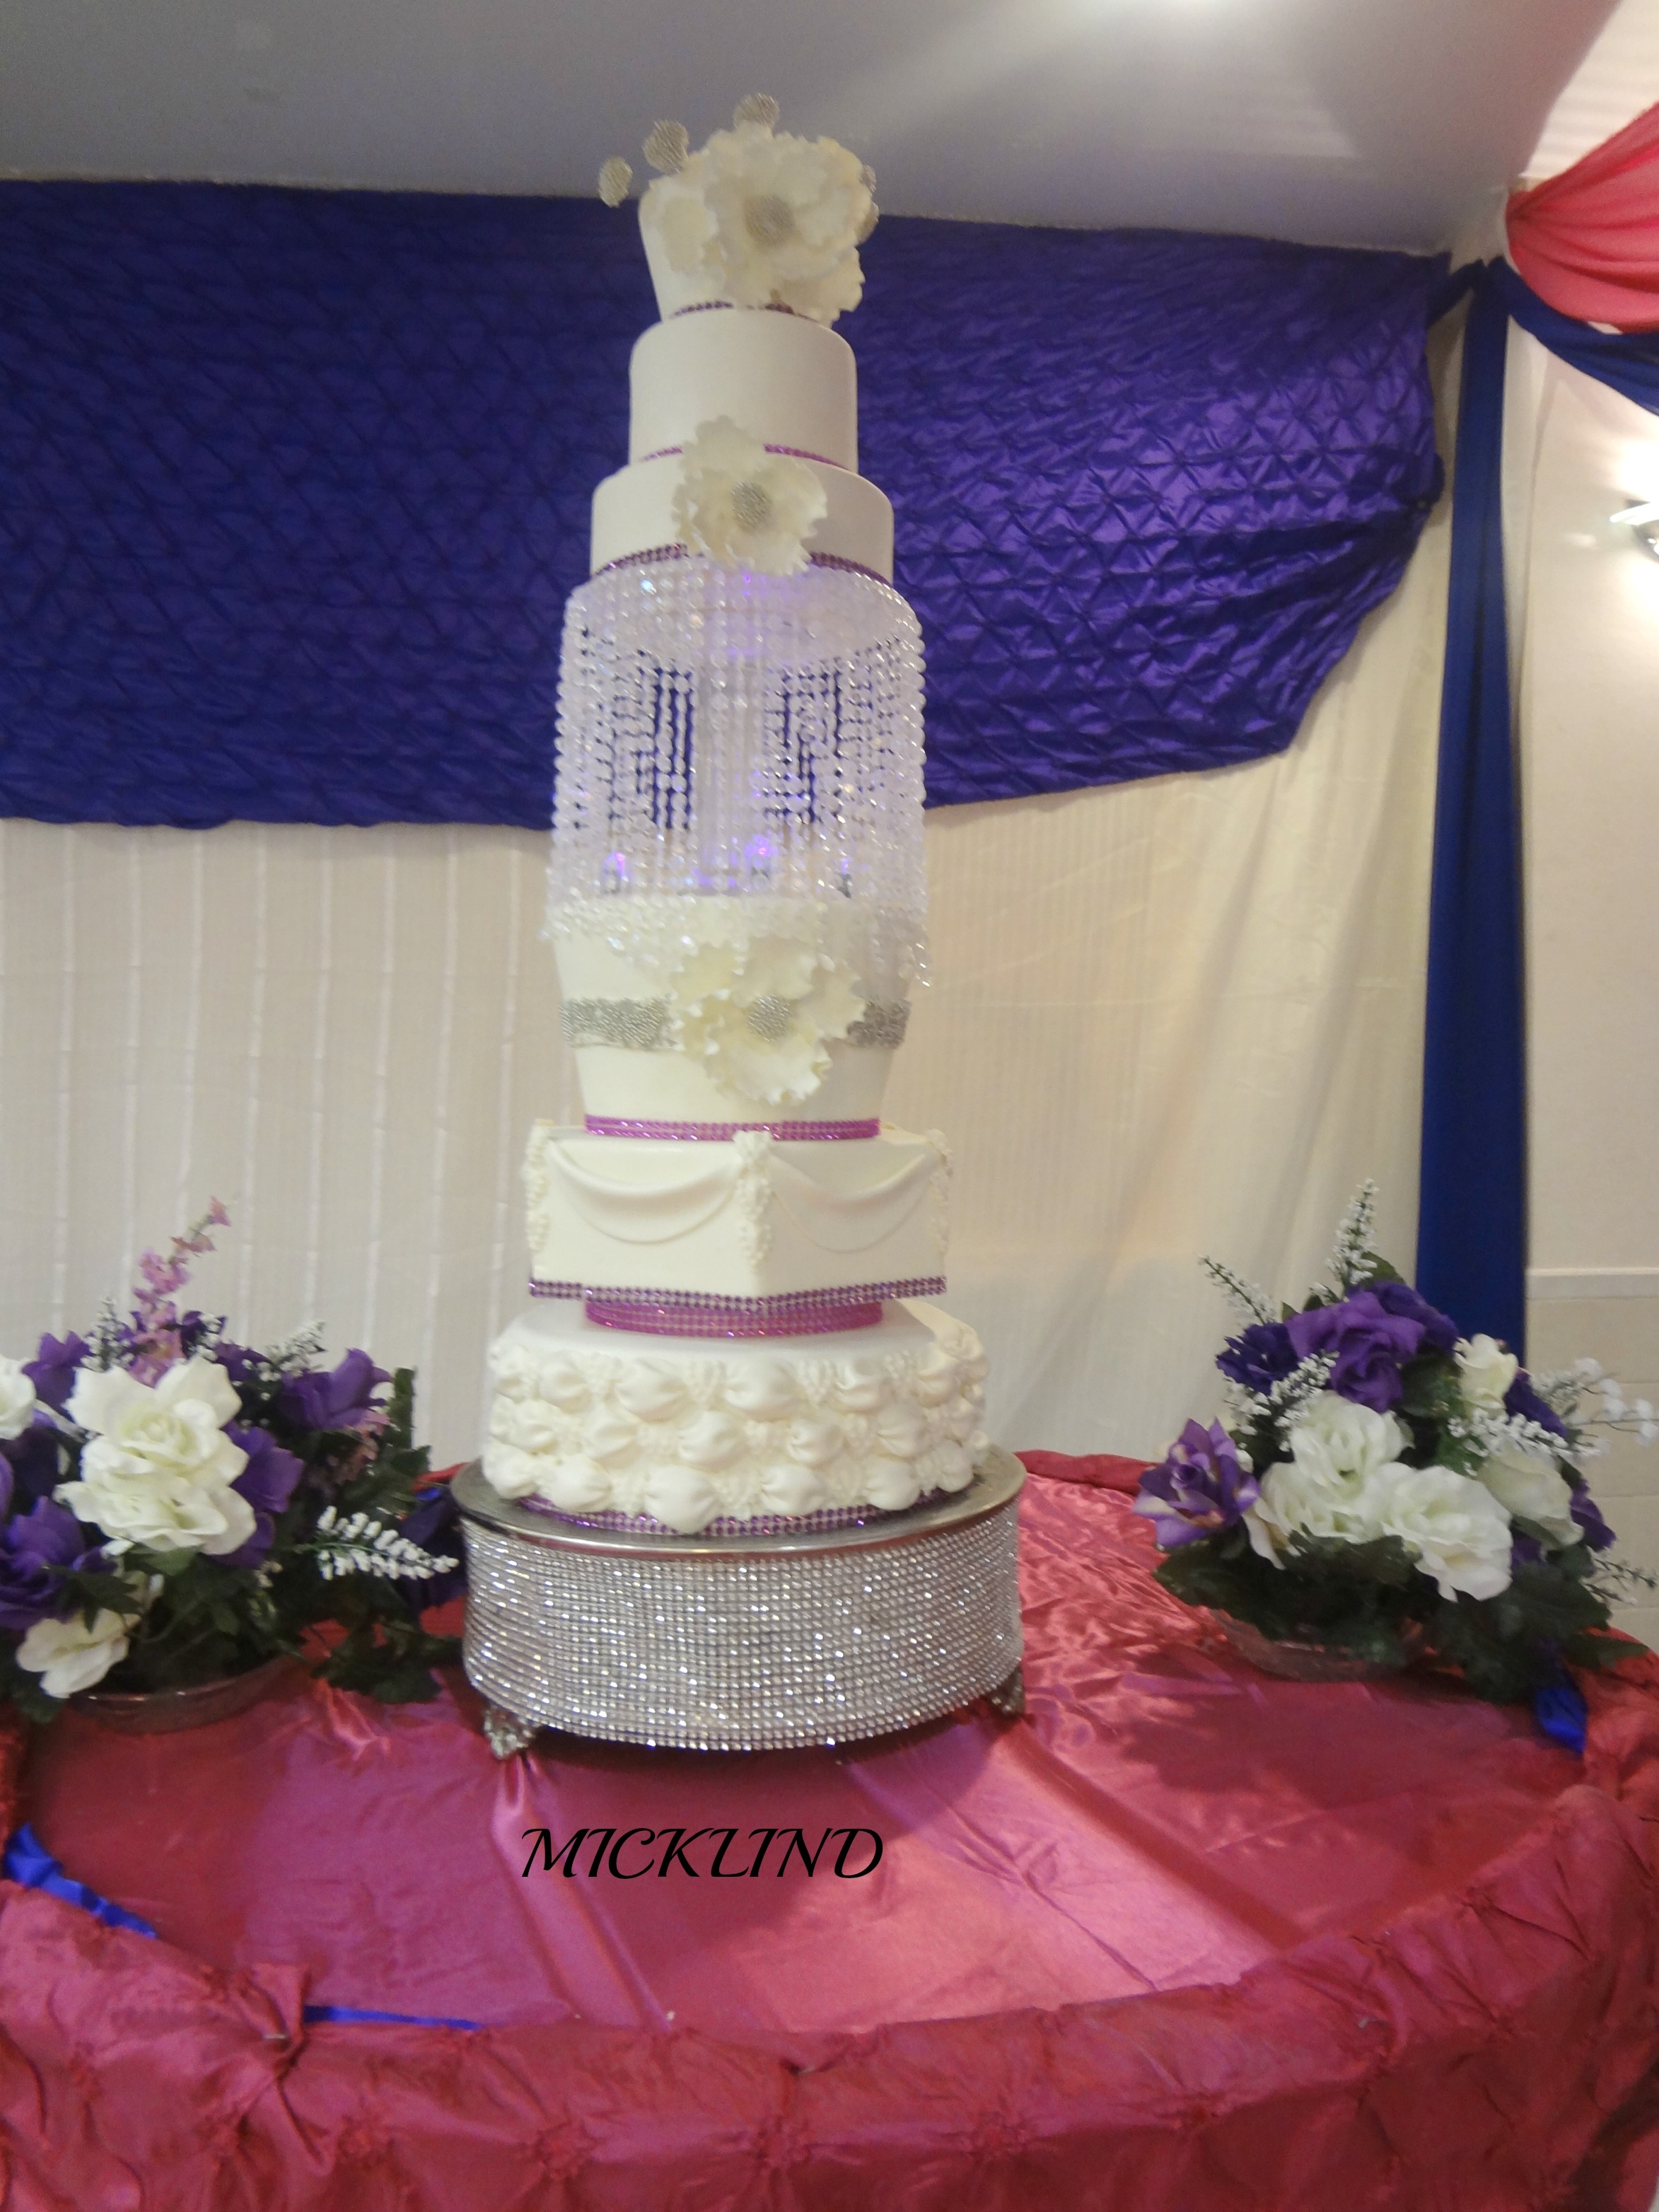 A 6 Tier Crystal Wedding Cake - CakeCentral.com